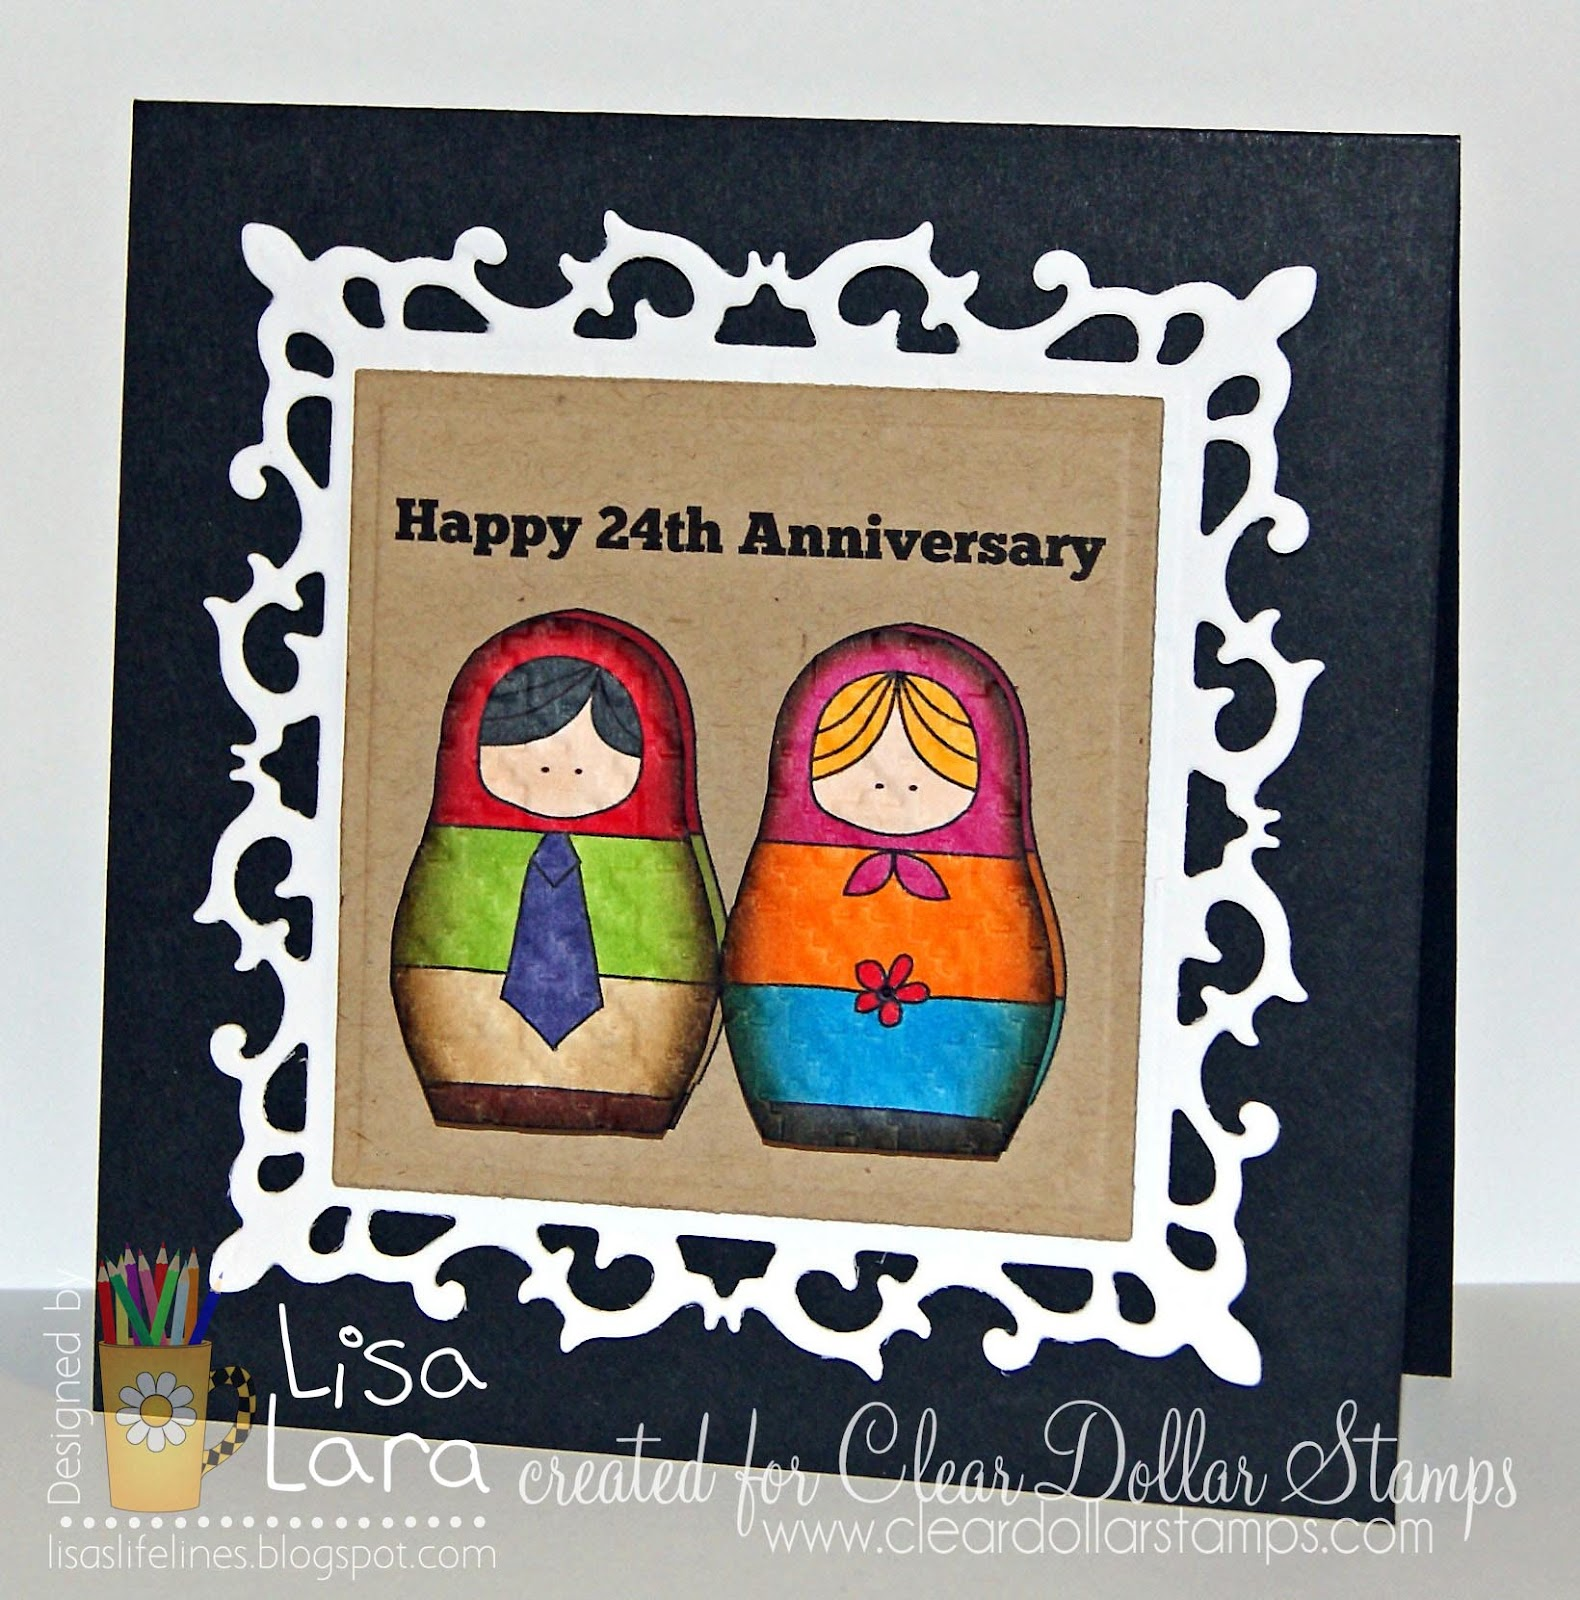 24th Wedding Anniversary Gift For Husband : Today is my husband and Is 24th Wedding Anniversary!